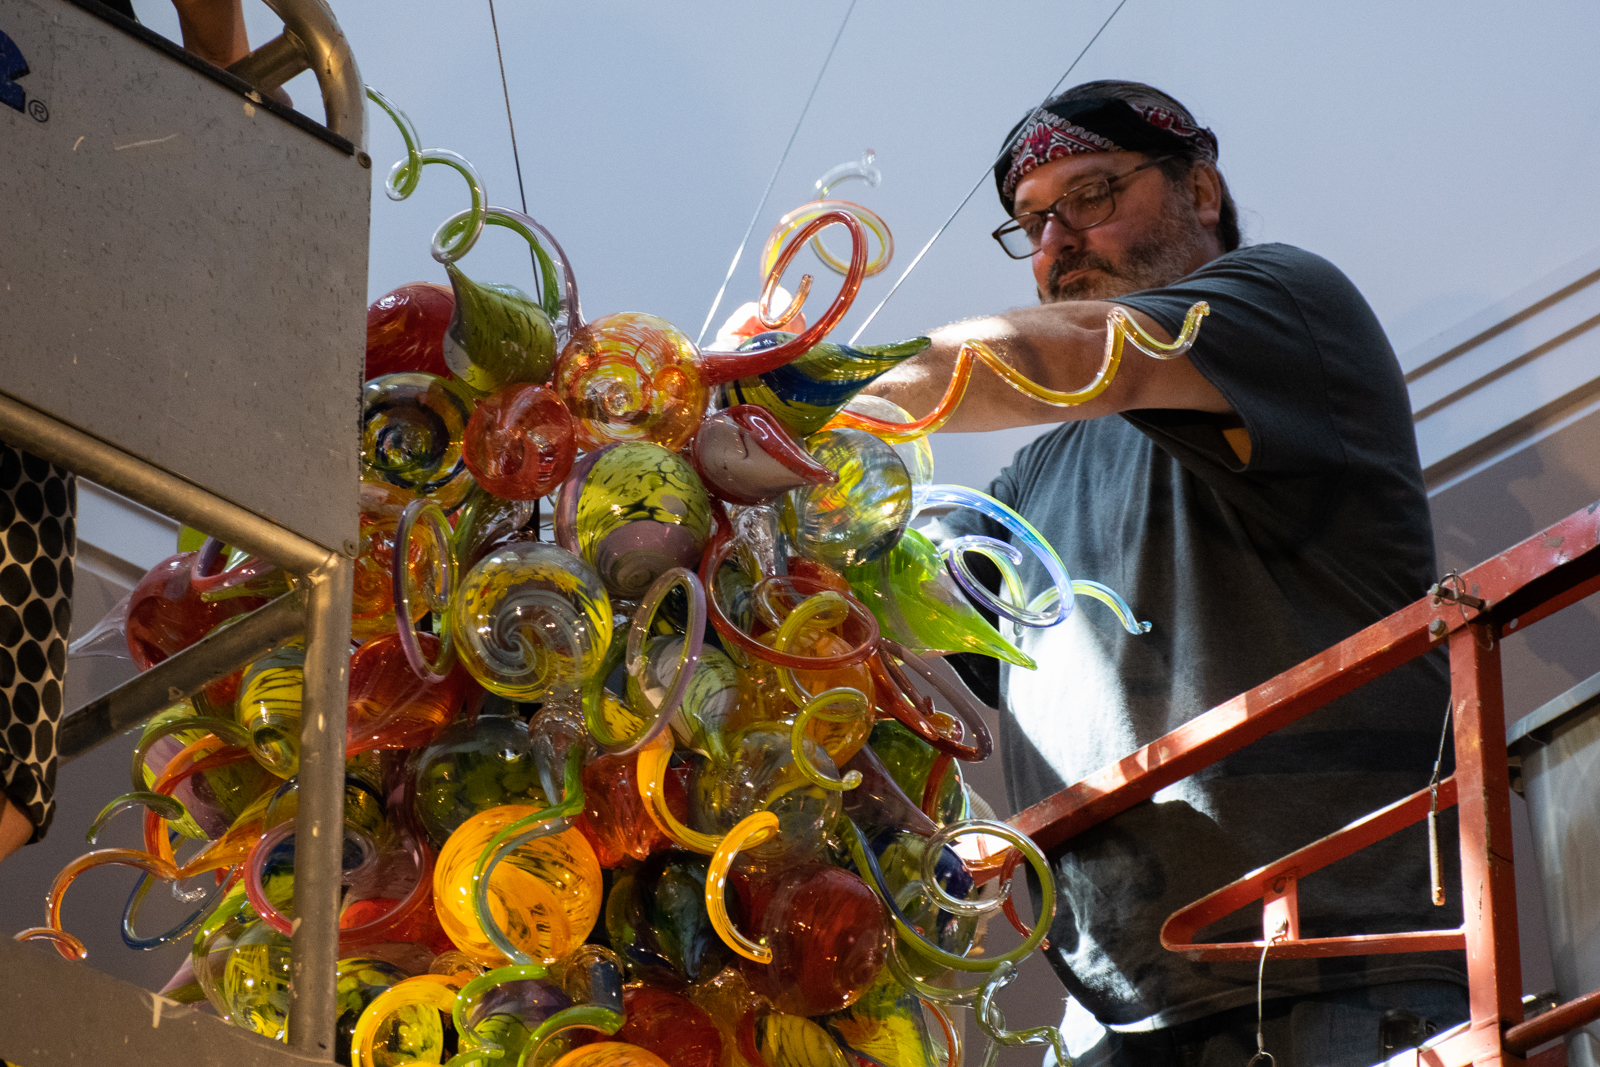 "Artist James Hayes installs his blown glass sculpture, titled ""Celebration Chandelier,"" on Sept. 20, in the atrium of the Arts & Science Center for Southeast Arkansas in Pine Bluff. A public reception for the unveiling of sculptures by Hayes and fellow Pine Bluff-born artist Kevin Cole is scheduled for 5 p.m. Thursday, Oct. 18, at the Arts & Science Center."